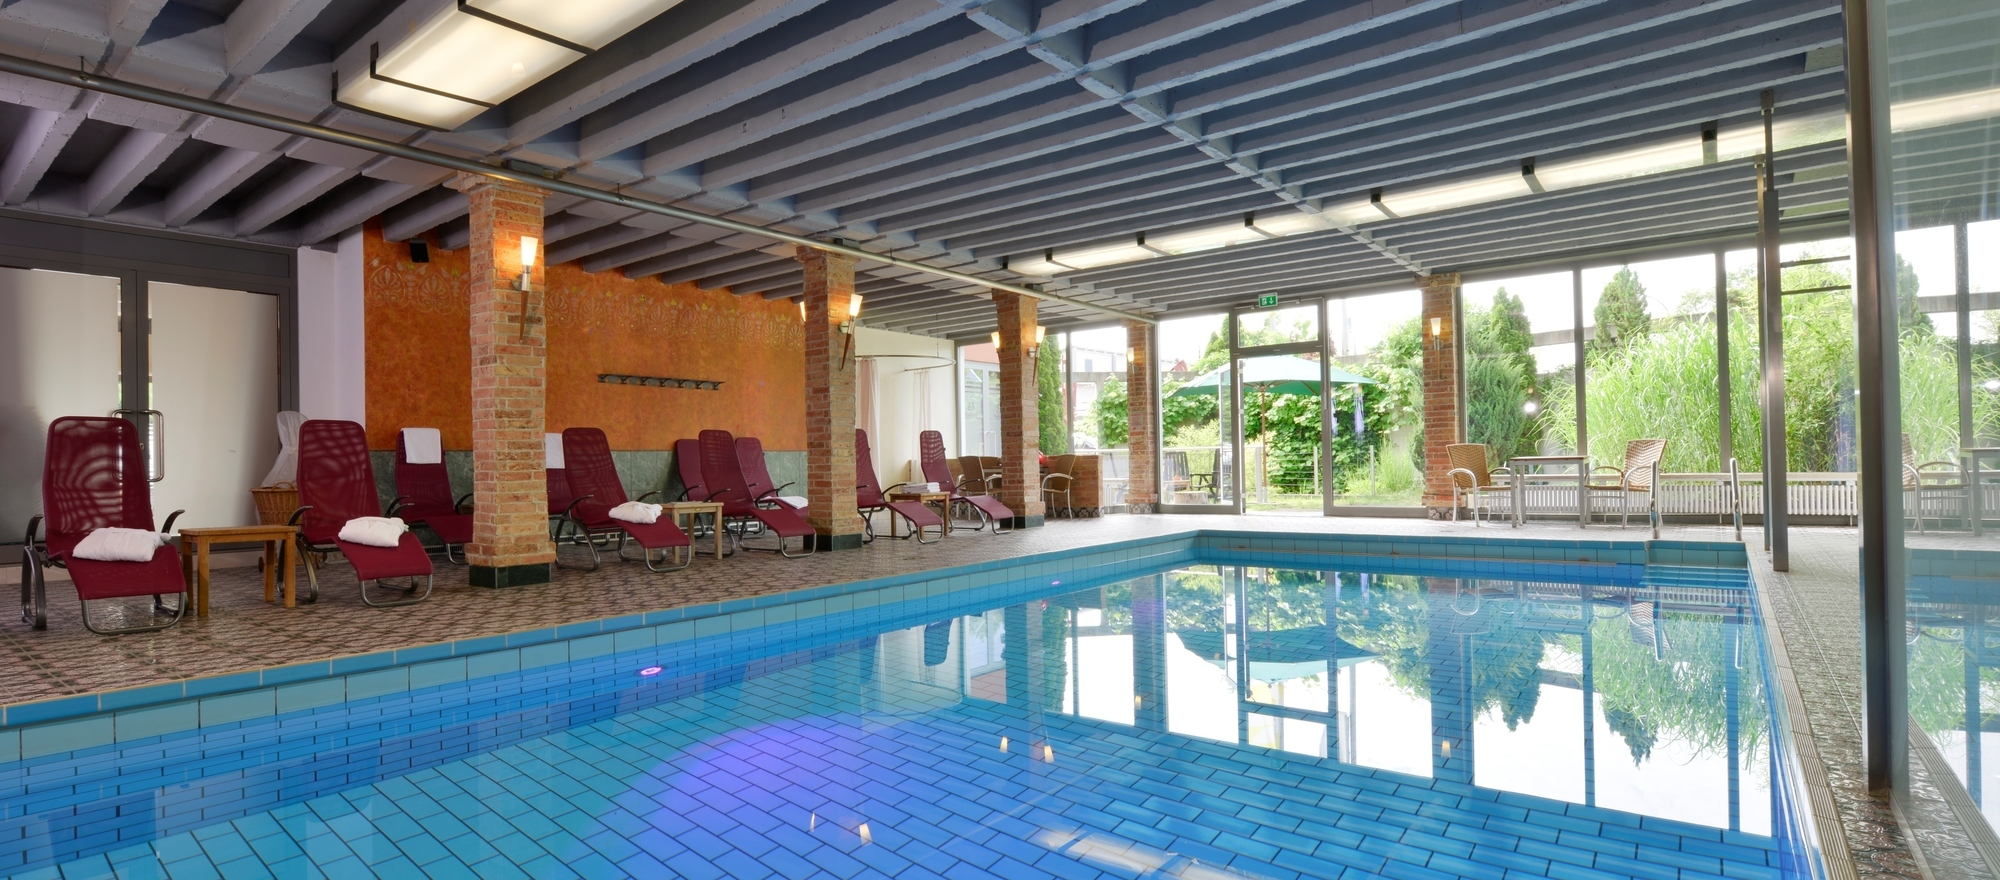 Swimming pool in Ringhotel Alpenhof in Augsburg, hotel in Swabia